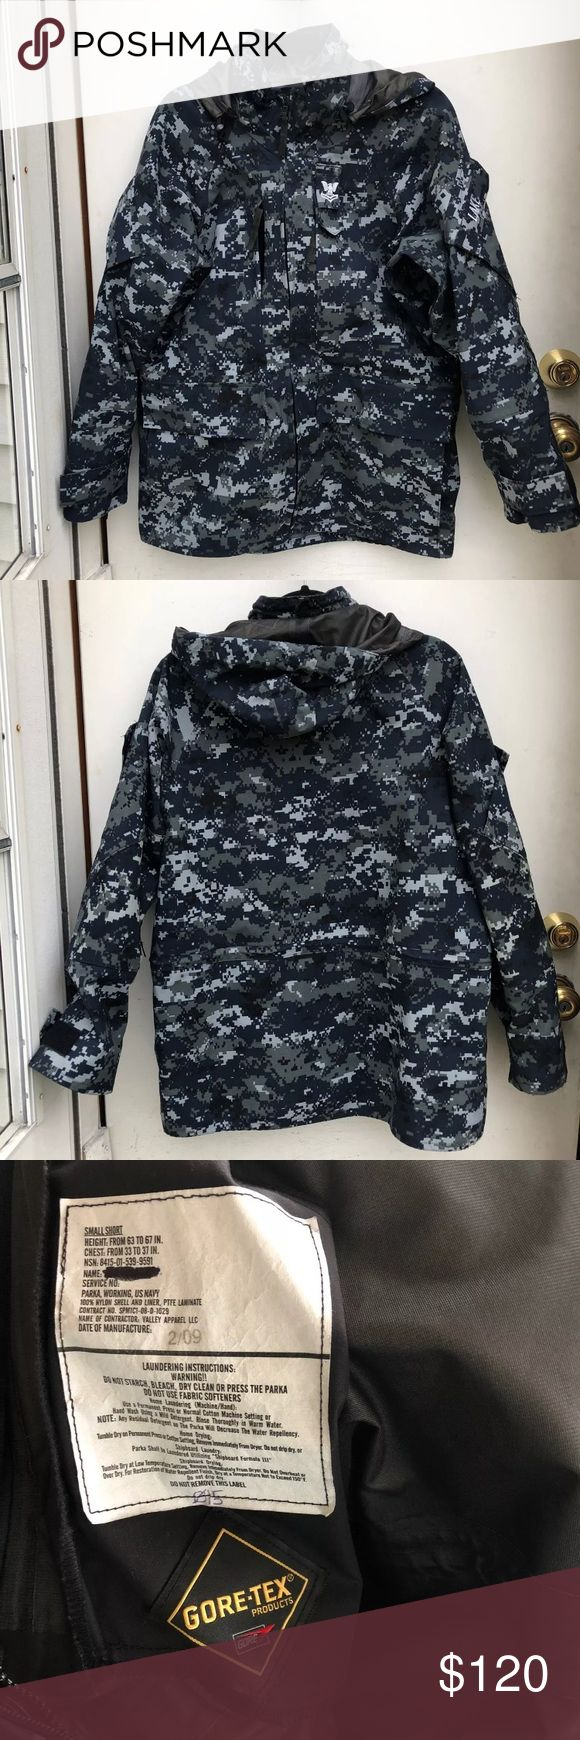 US Navy Gore-Tex Camo Rain Jacket Size Small Short - High: From 63 to 67 IN. Chest: From 33 to 37 IN. Like new conditions. My friend don't need anymore. He wants someone to enjoy it. USN Jackets & Coats Military & Field